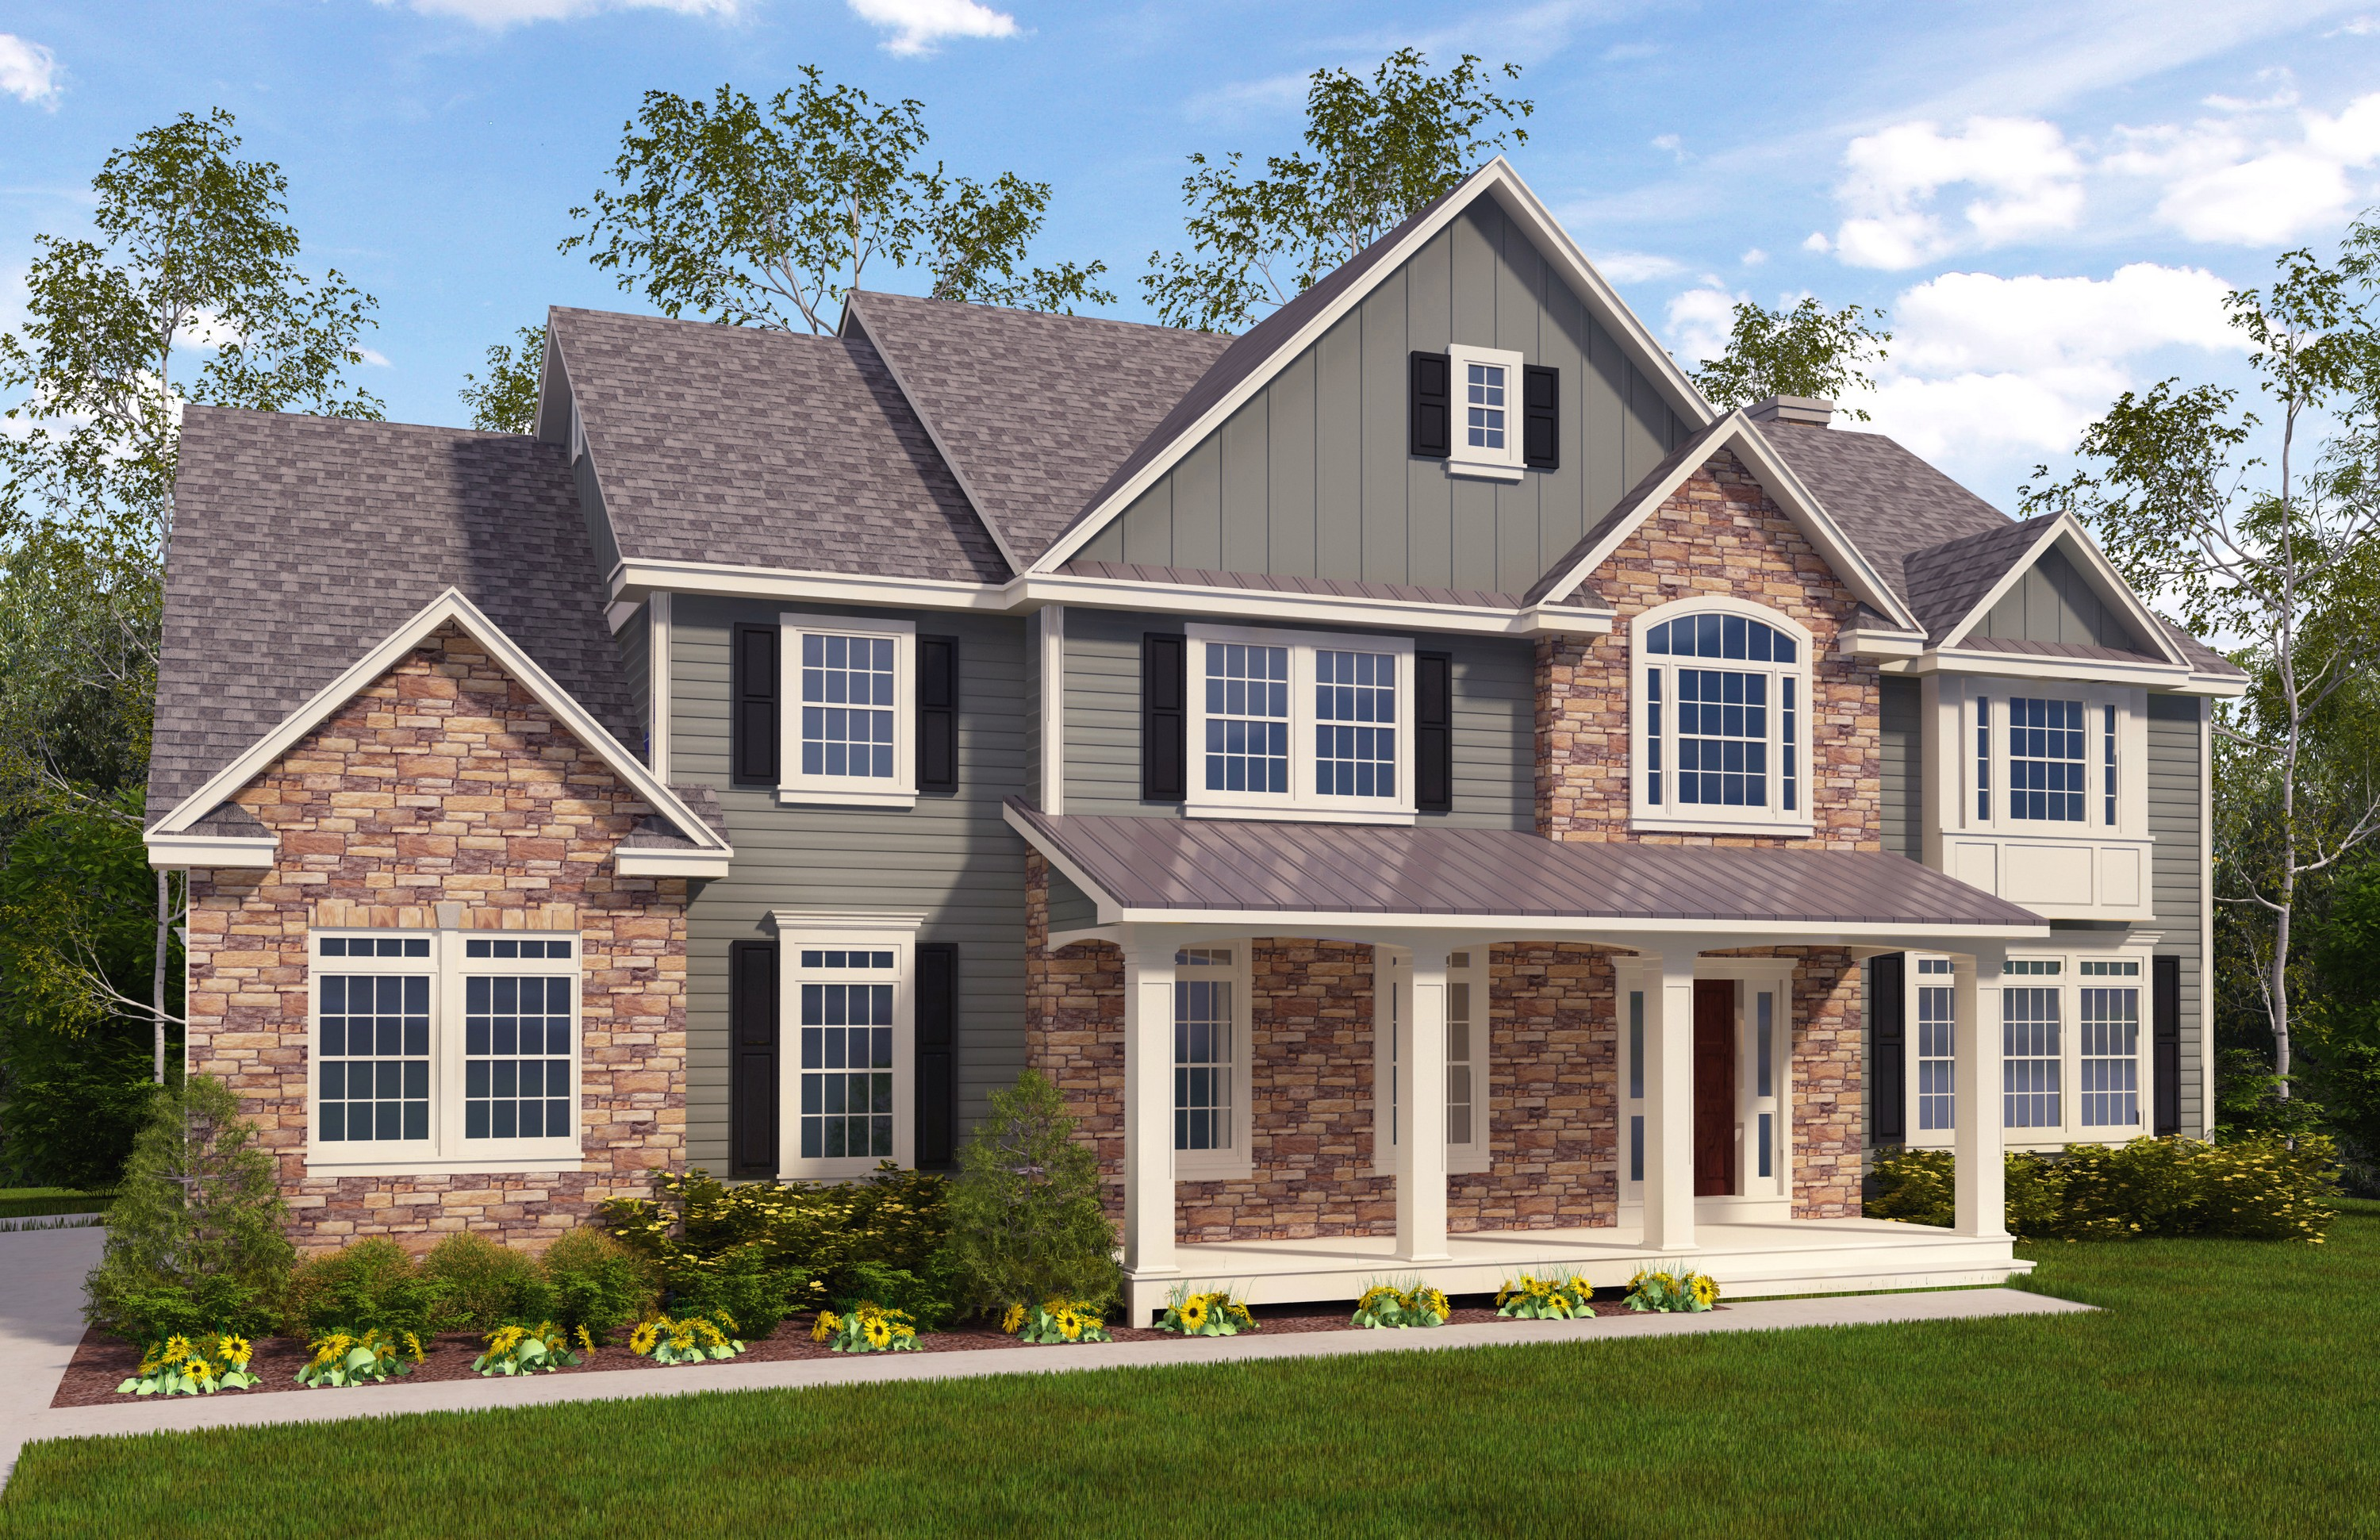 Single Family Home for Sale at New Construction 24 Valenza Lane Blauvelt, New York, 10913 United States